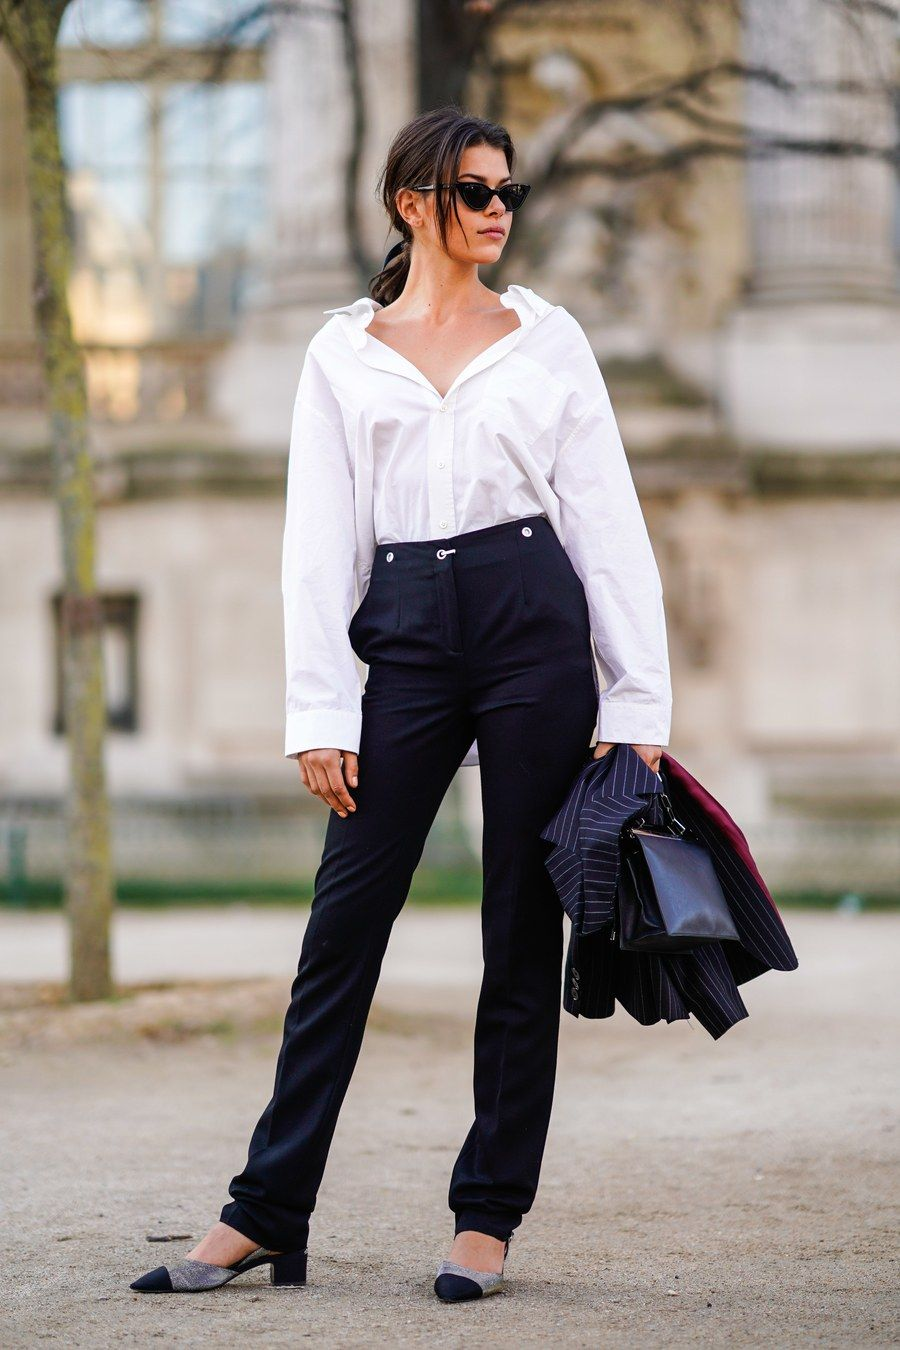 Outfit Ideas: How to Wear a White Shirt Like a Fashion Person